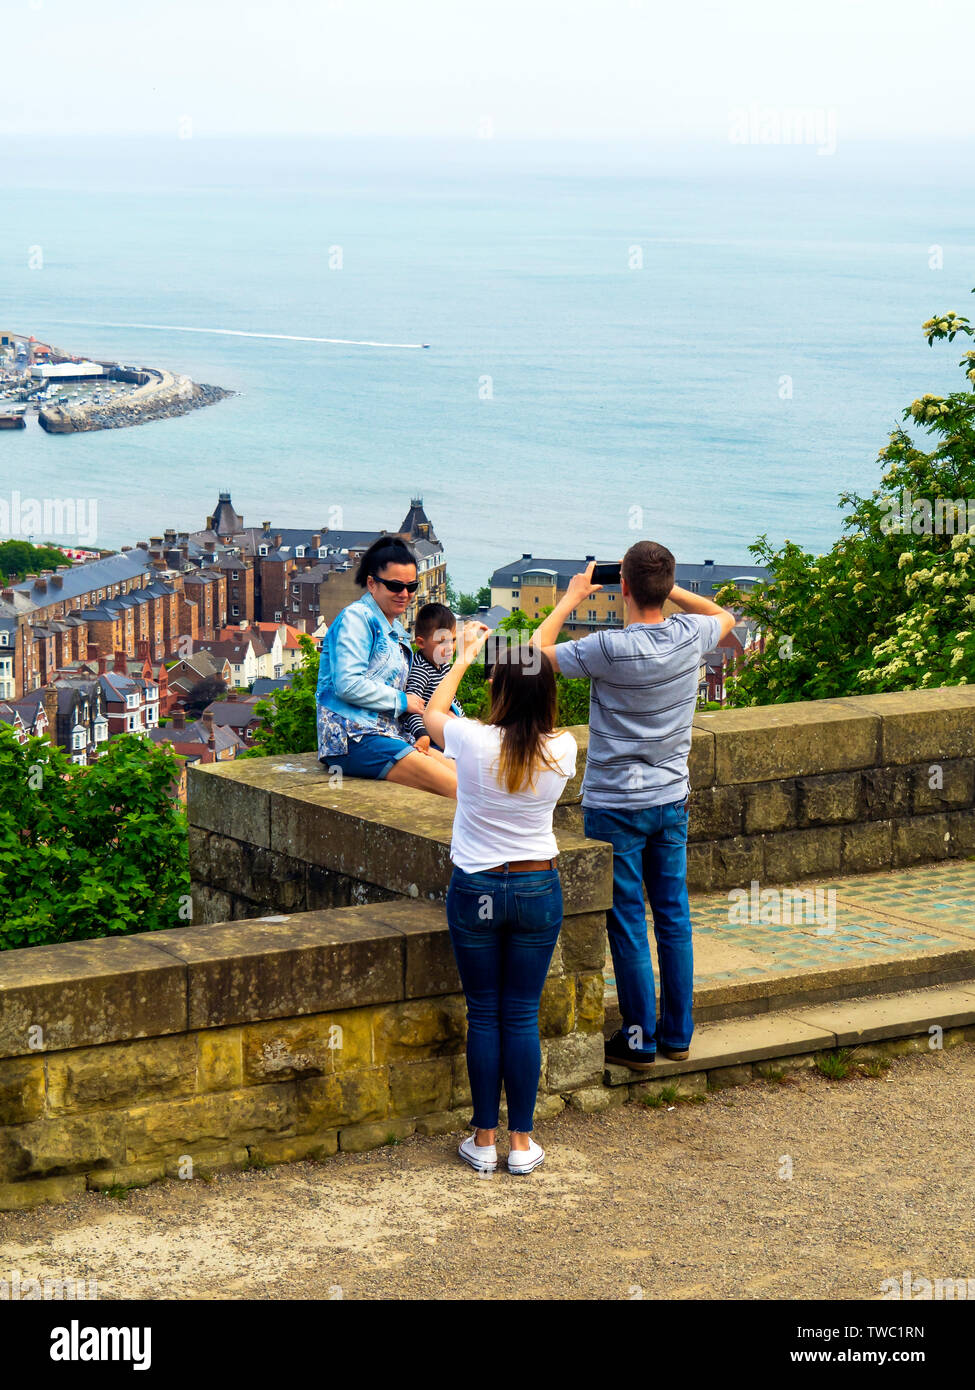 Spanish Tourists on holiday in Scarborough North Yorkshire taking photographs of their children on the look out point at Olivers Mount above the town - Stock Image